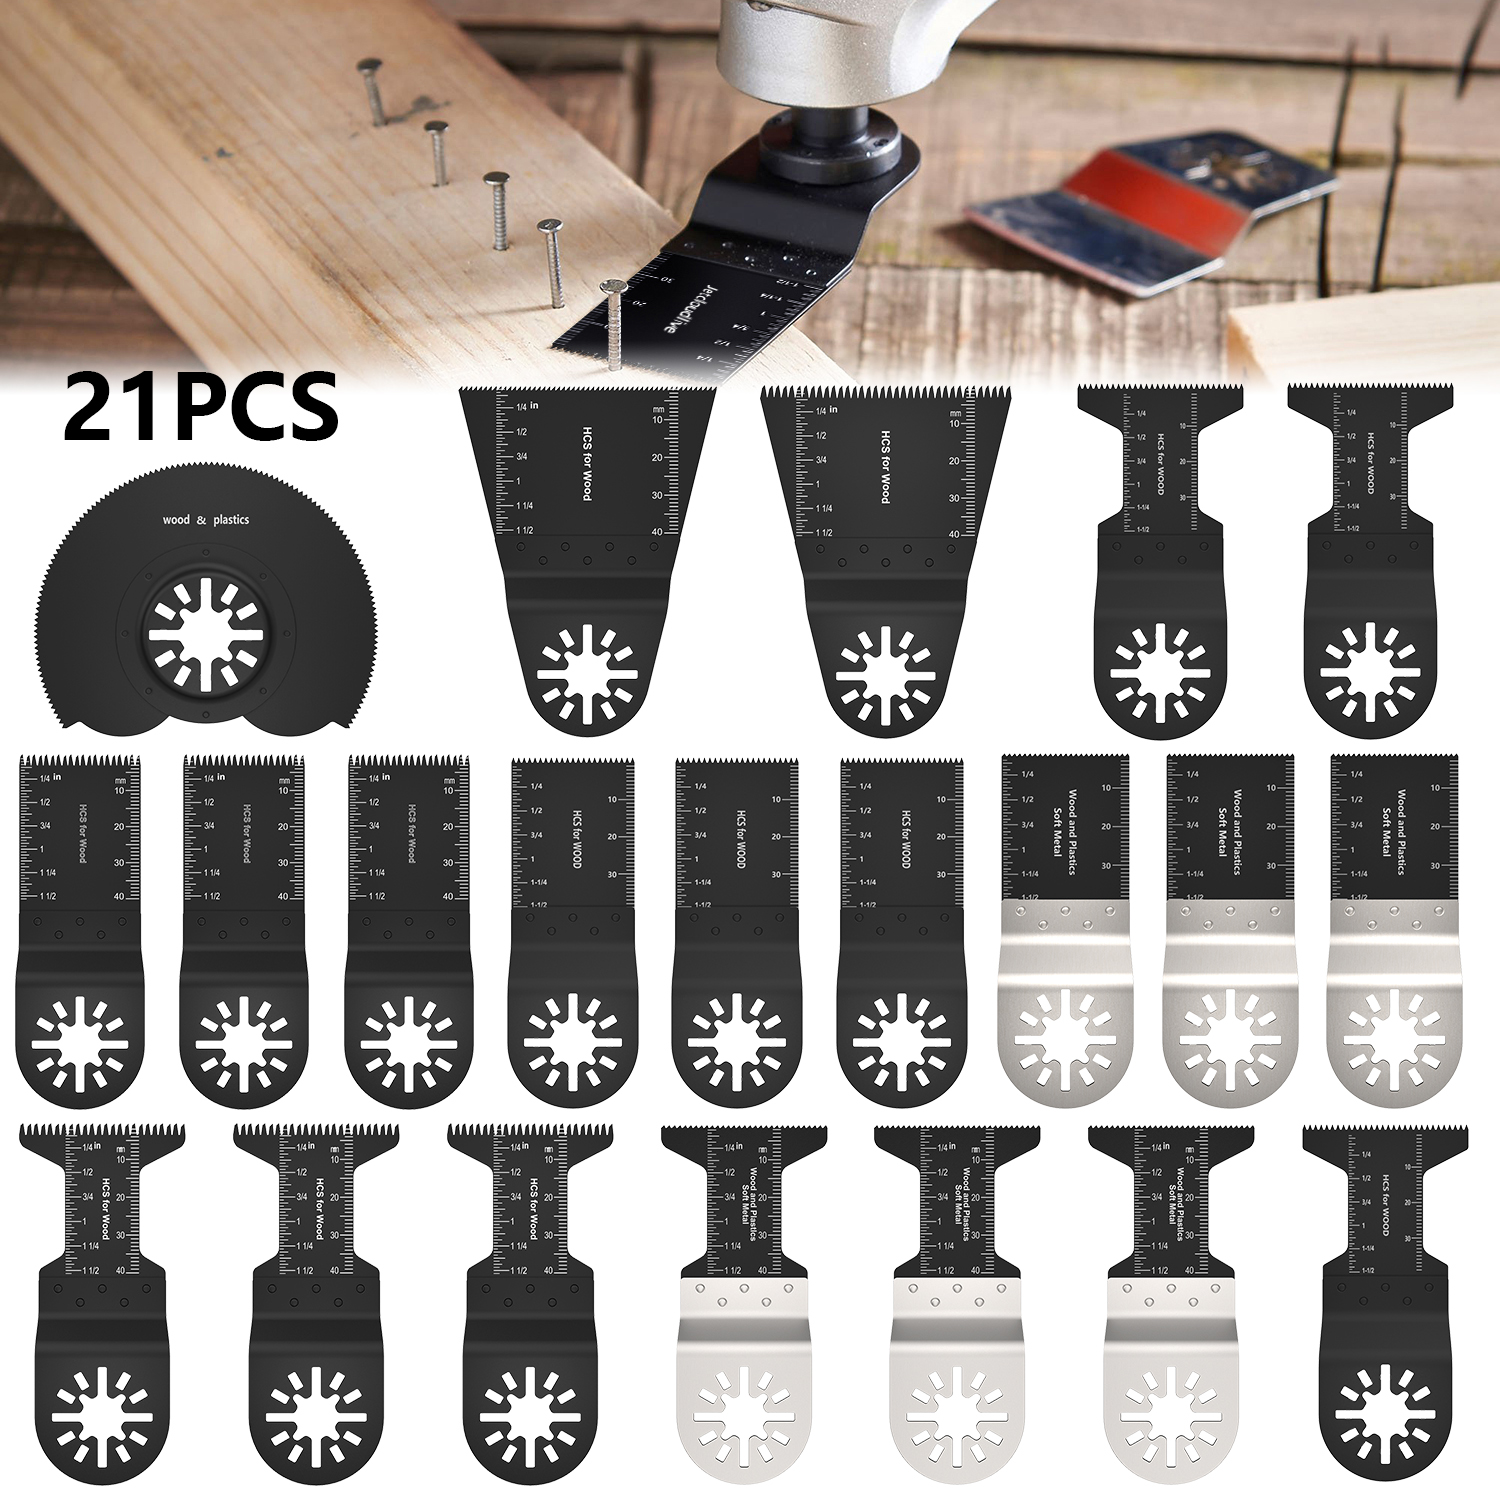 20PCS Universal Mix Blades Oscillating Saw Blade Kit For Wood And Metal Cutting Quick Release For Dewalt Multi Tool Accessories